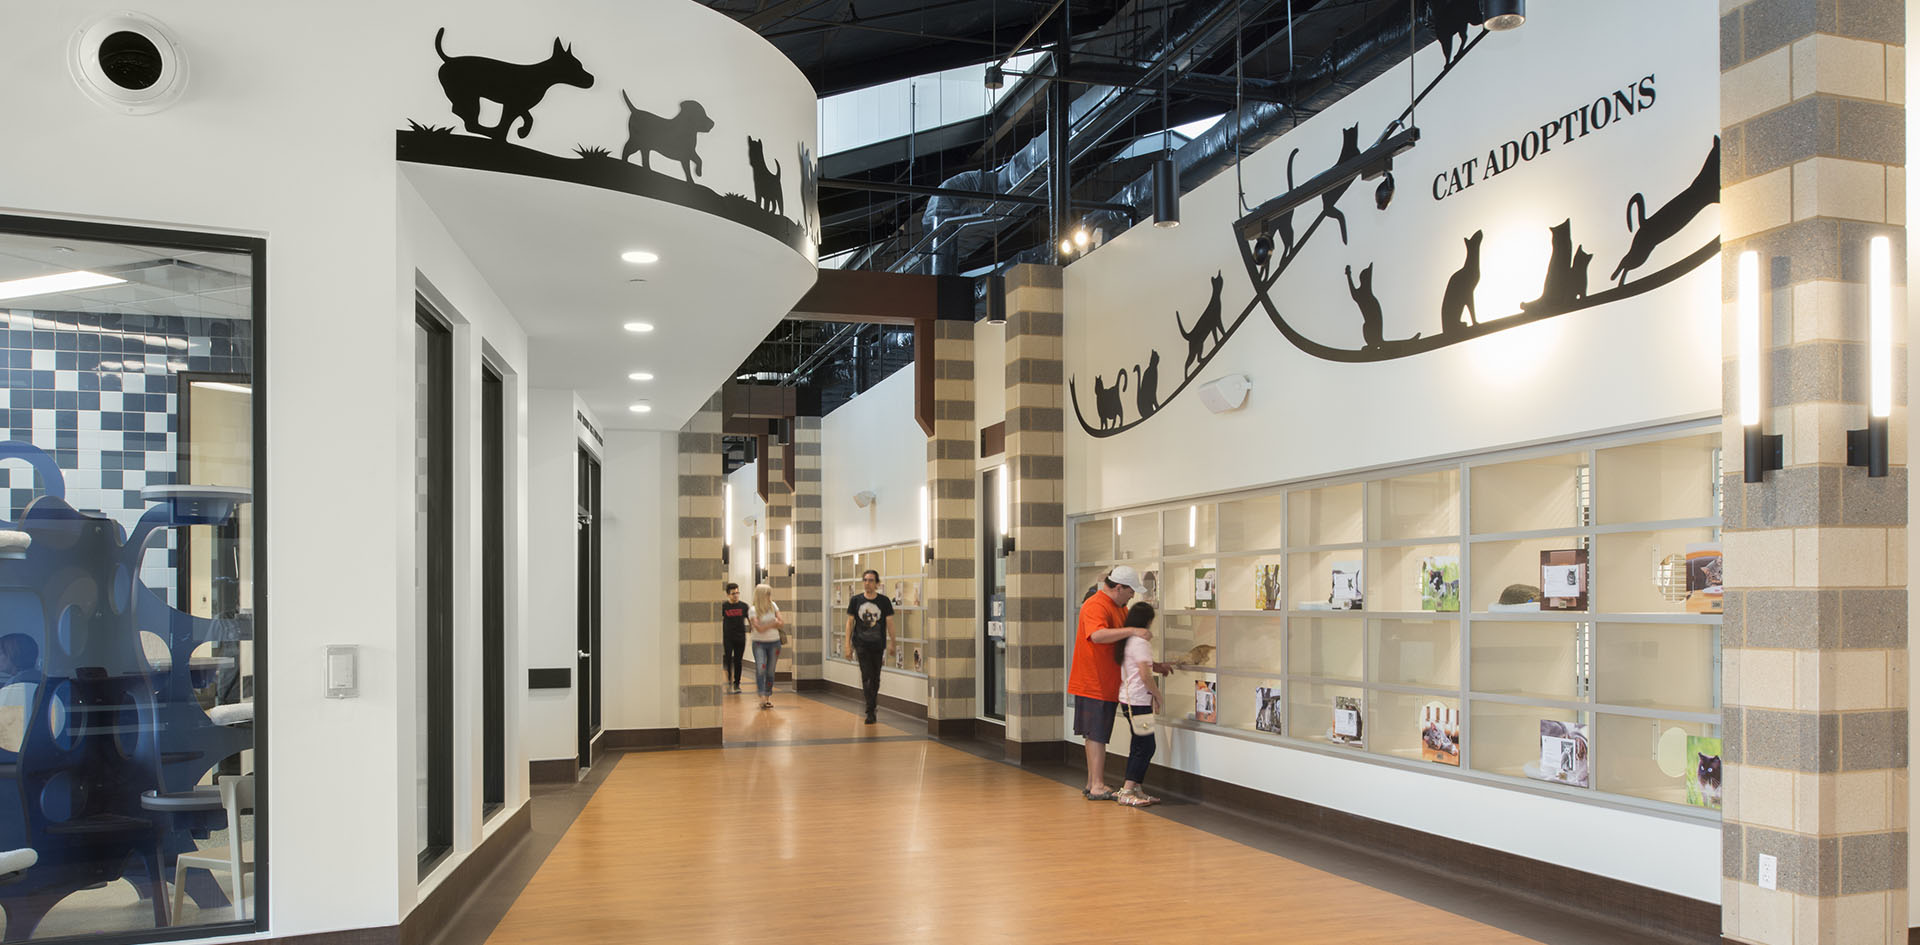 7  HSPCA state of the art animal shelter and wildlife center by Jackson & Ryan Architects